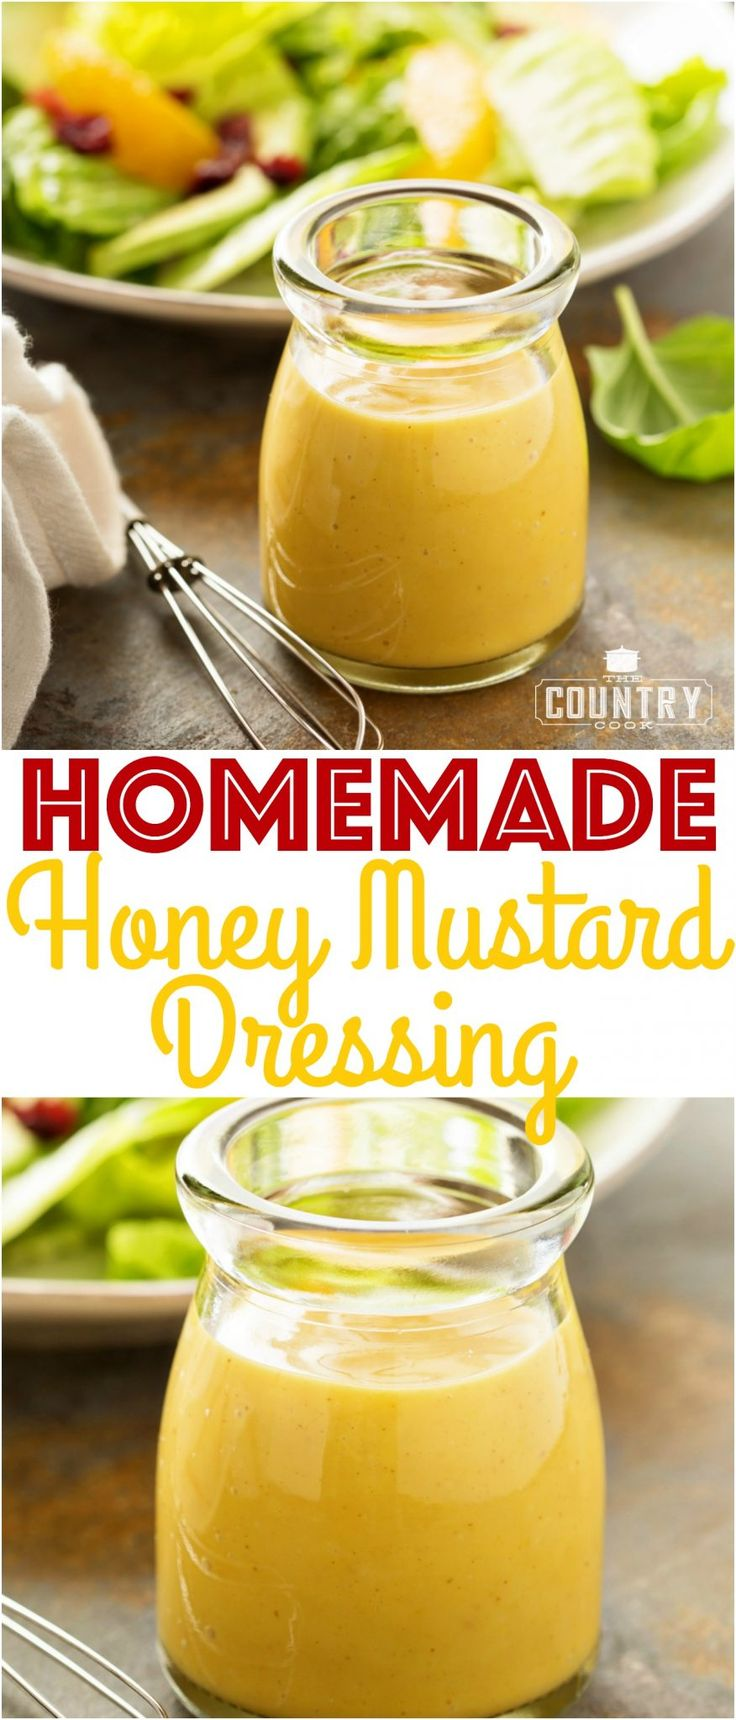 Homemade Honey Mustard Dressing and Dipping sauce recipe from The Country Cook